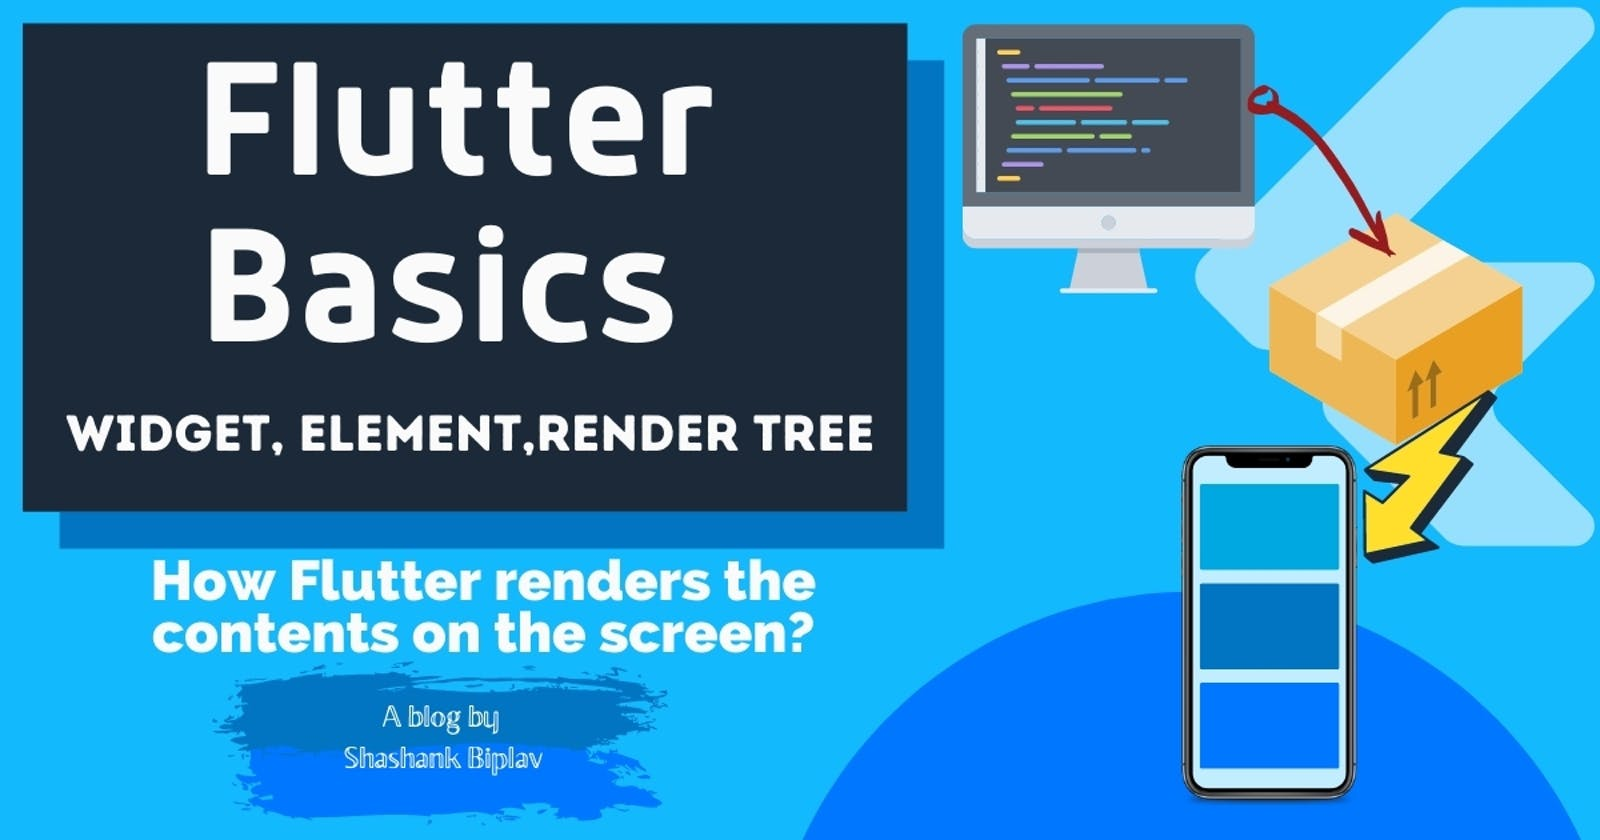 Flutter Basics - How Flutter renders the contents on the screen?